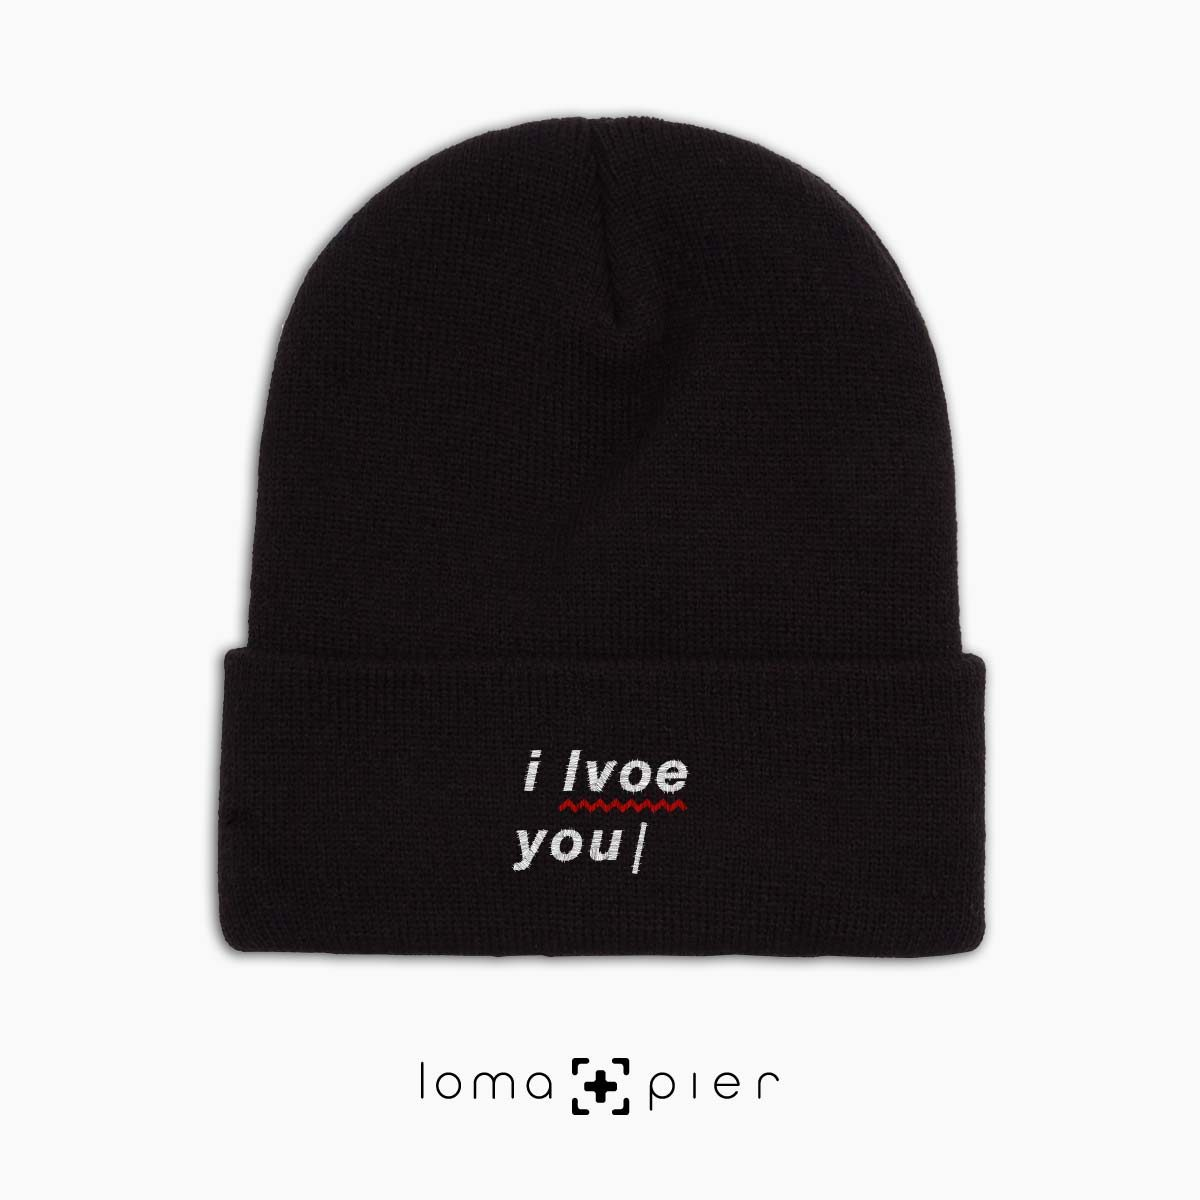 I LVOE YOU typography embroidered on a black cuffed beanie with white thread by loma+pier hat store made in the USA